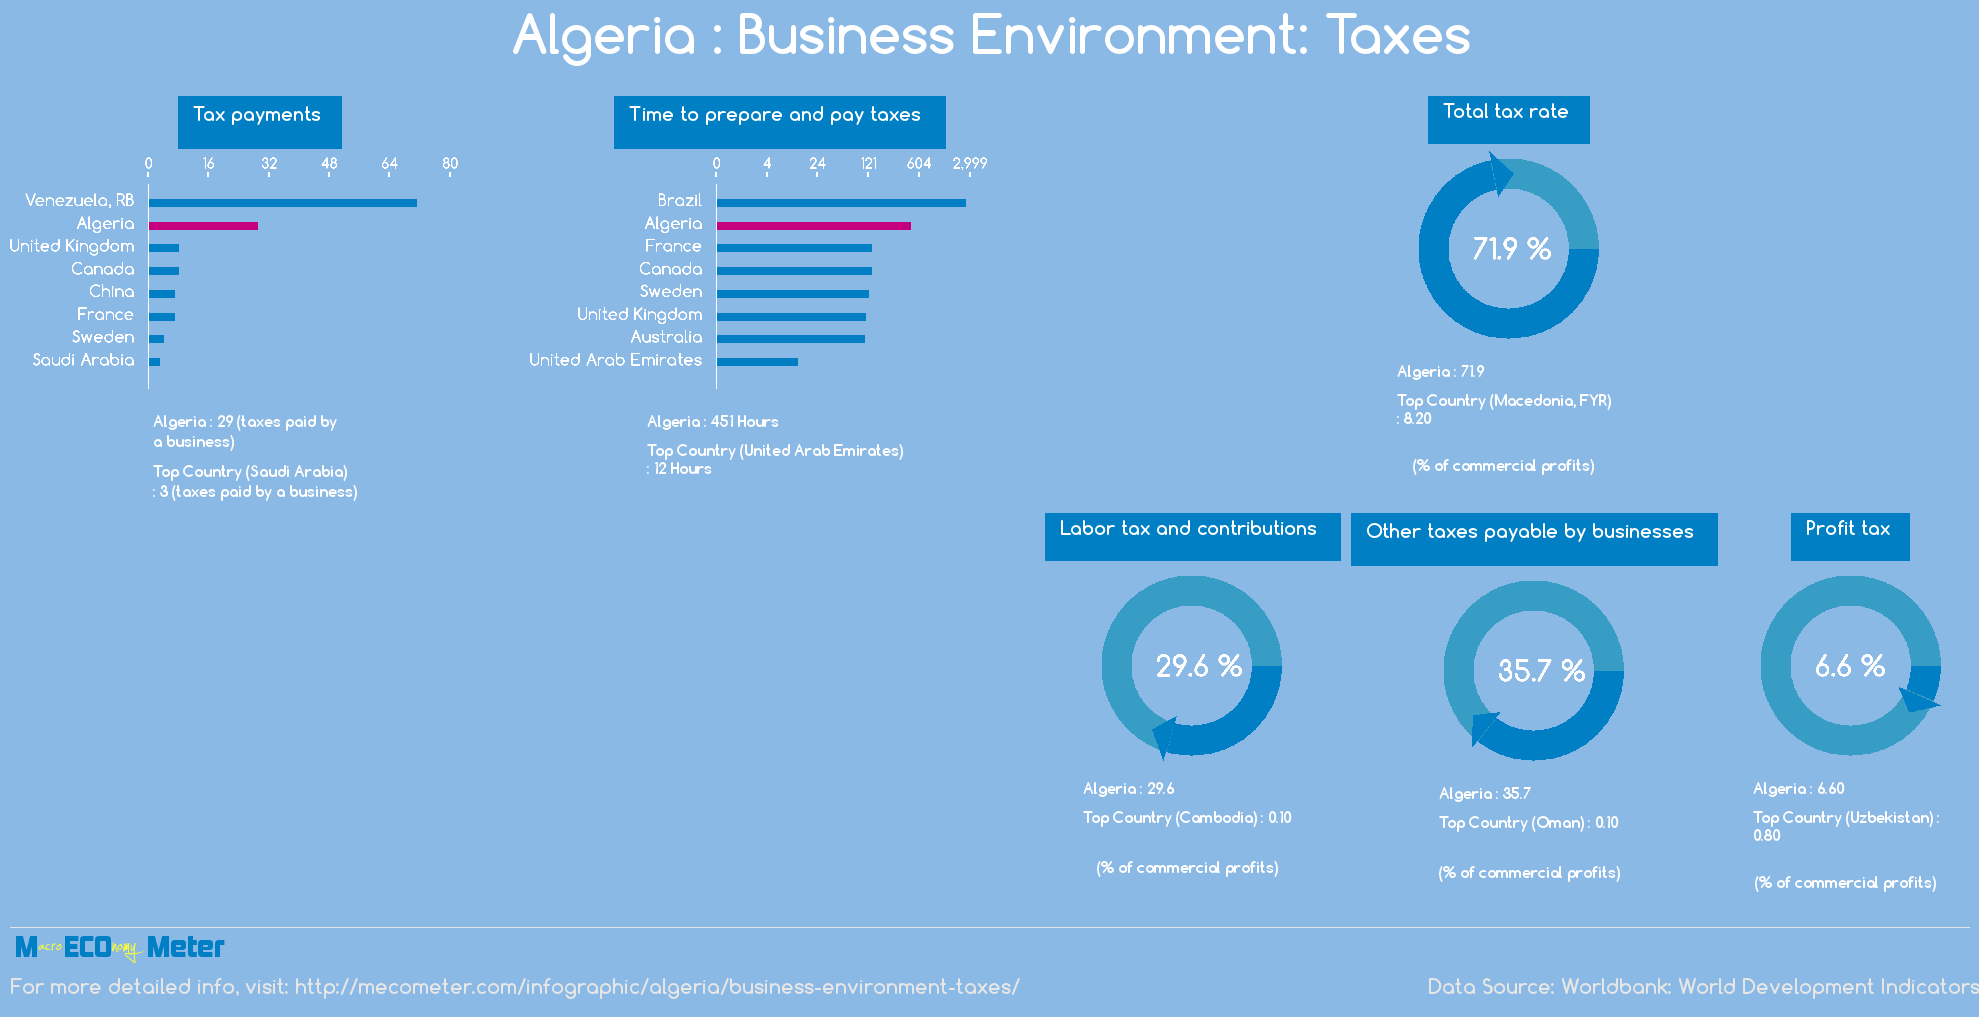 Algeria : Business Environment: Taxes